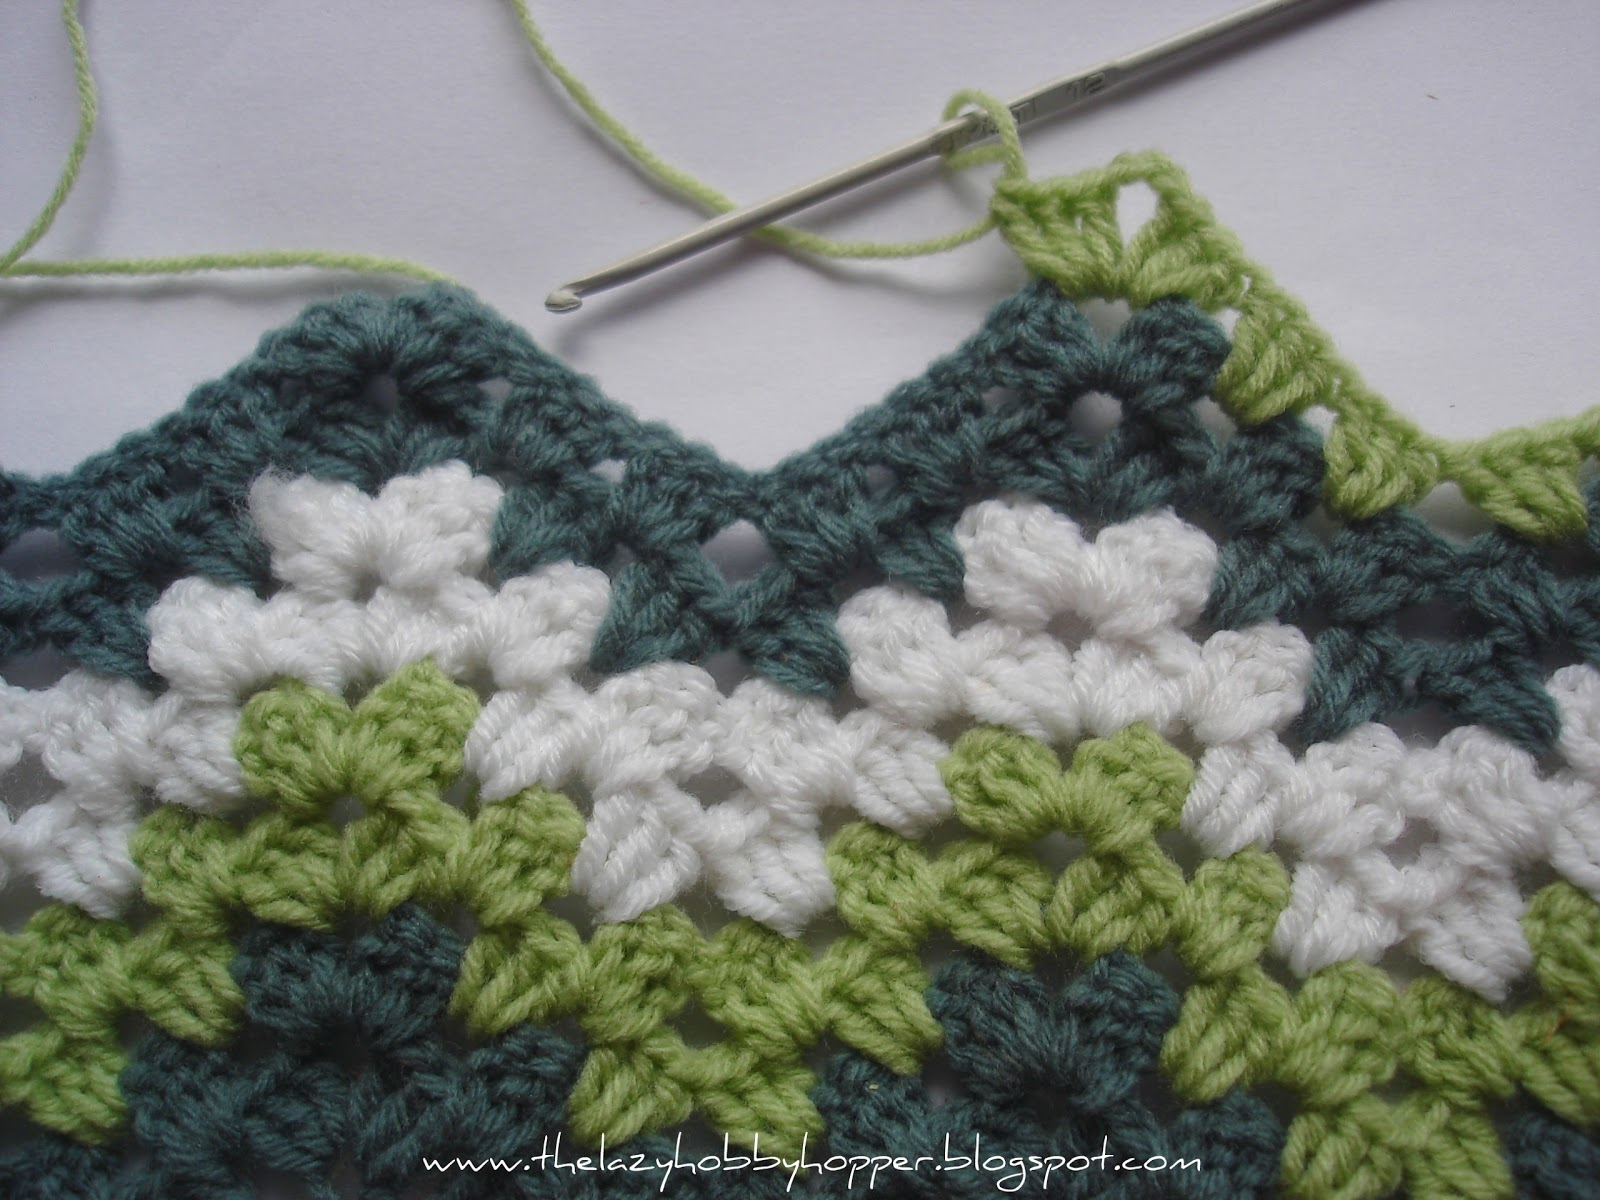 How To Crochet A : The Lazy Hobbyhopper: How to crochet granny ripple